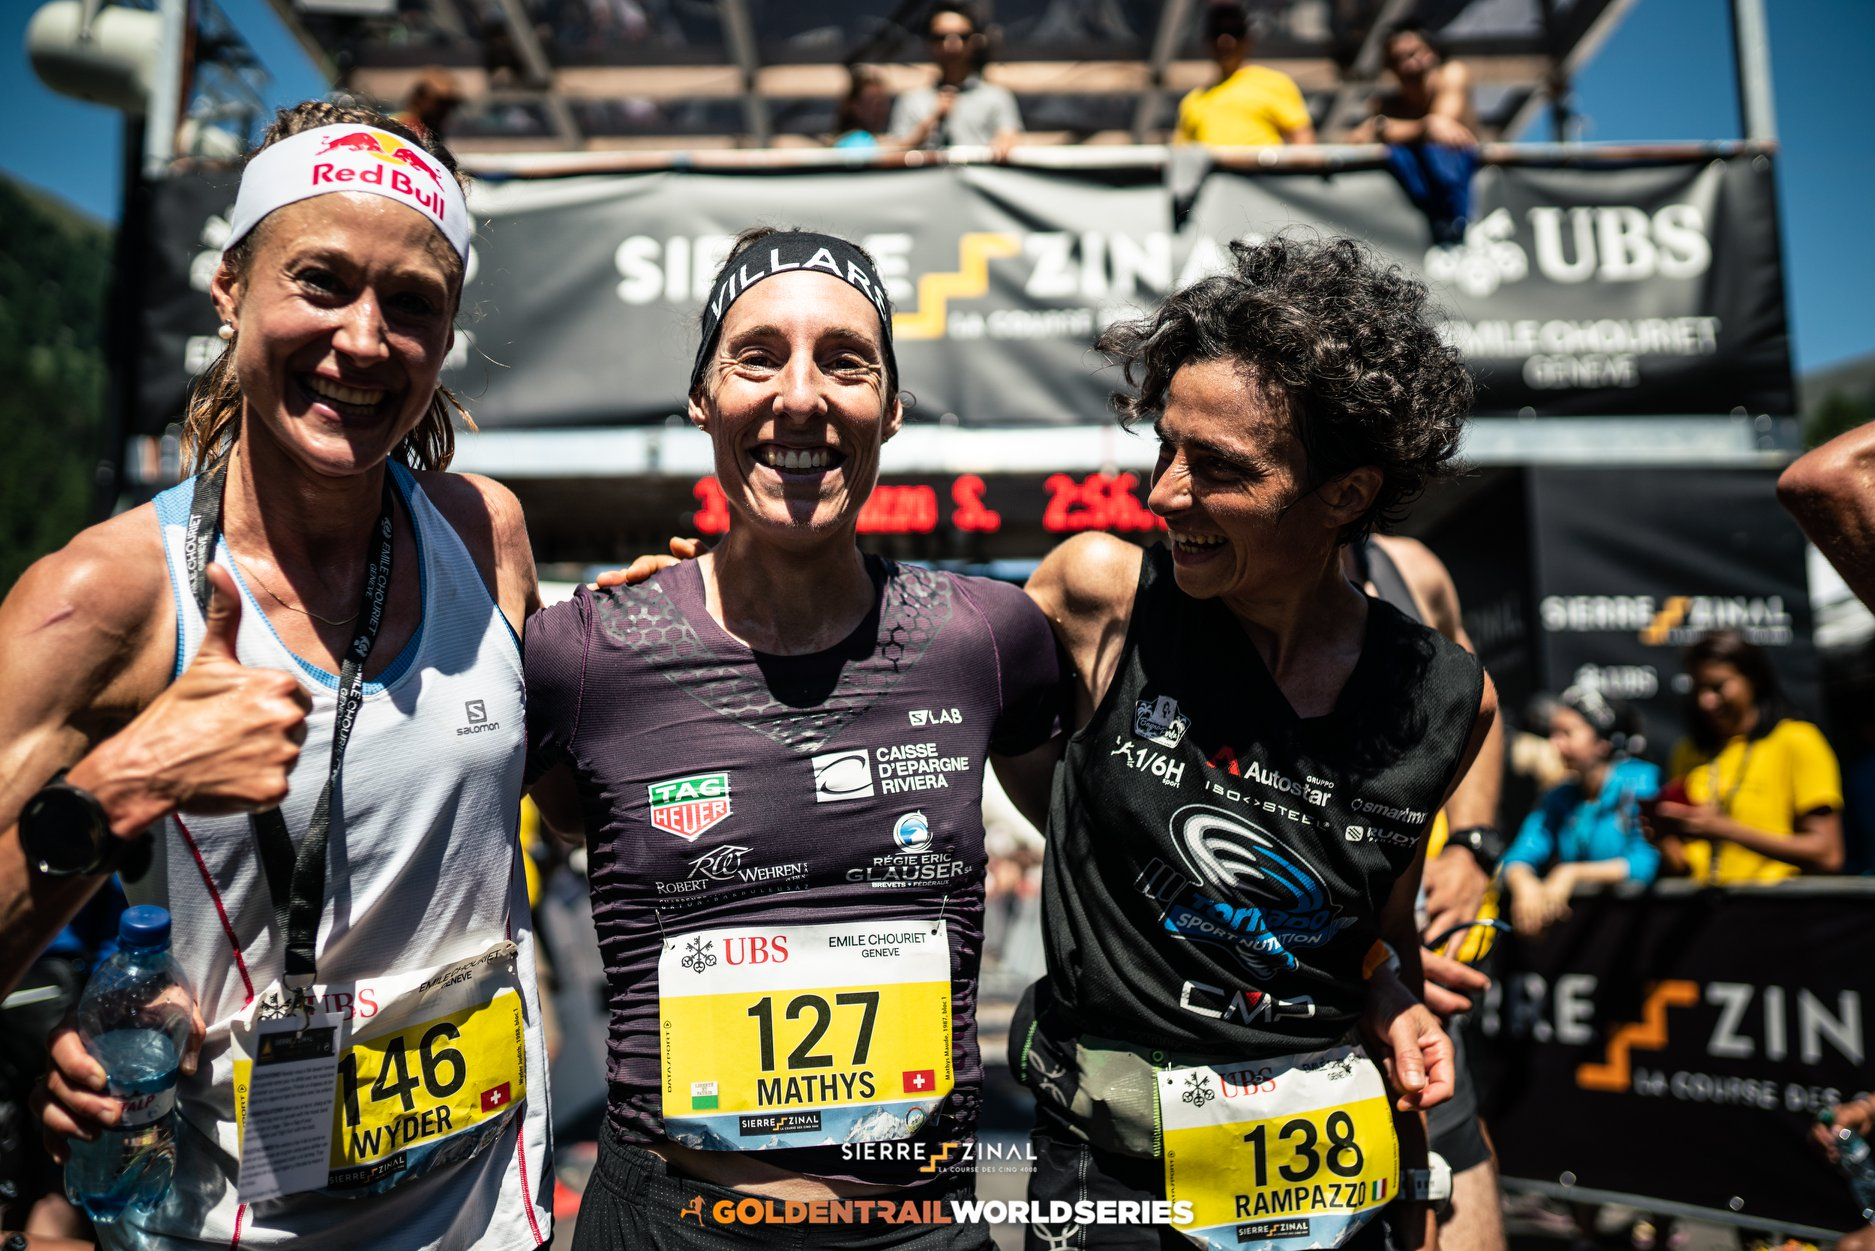 Sierre Zinal Women Podium